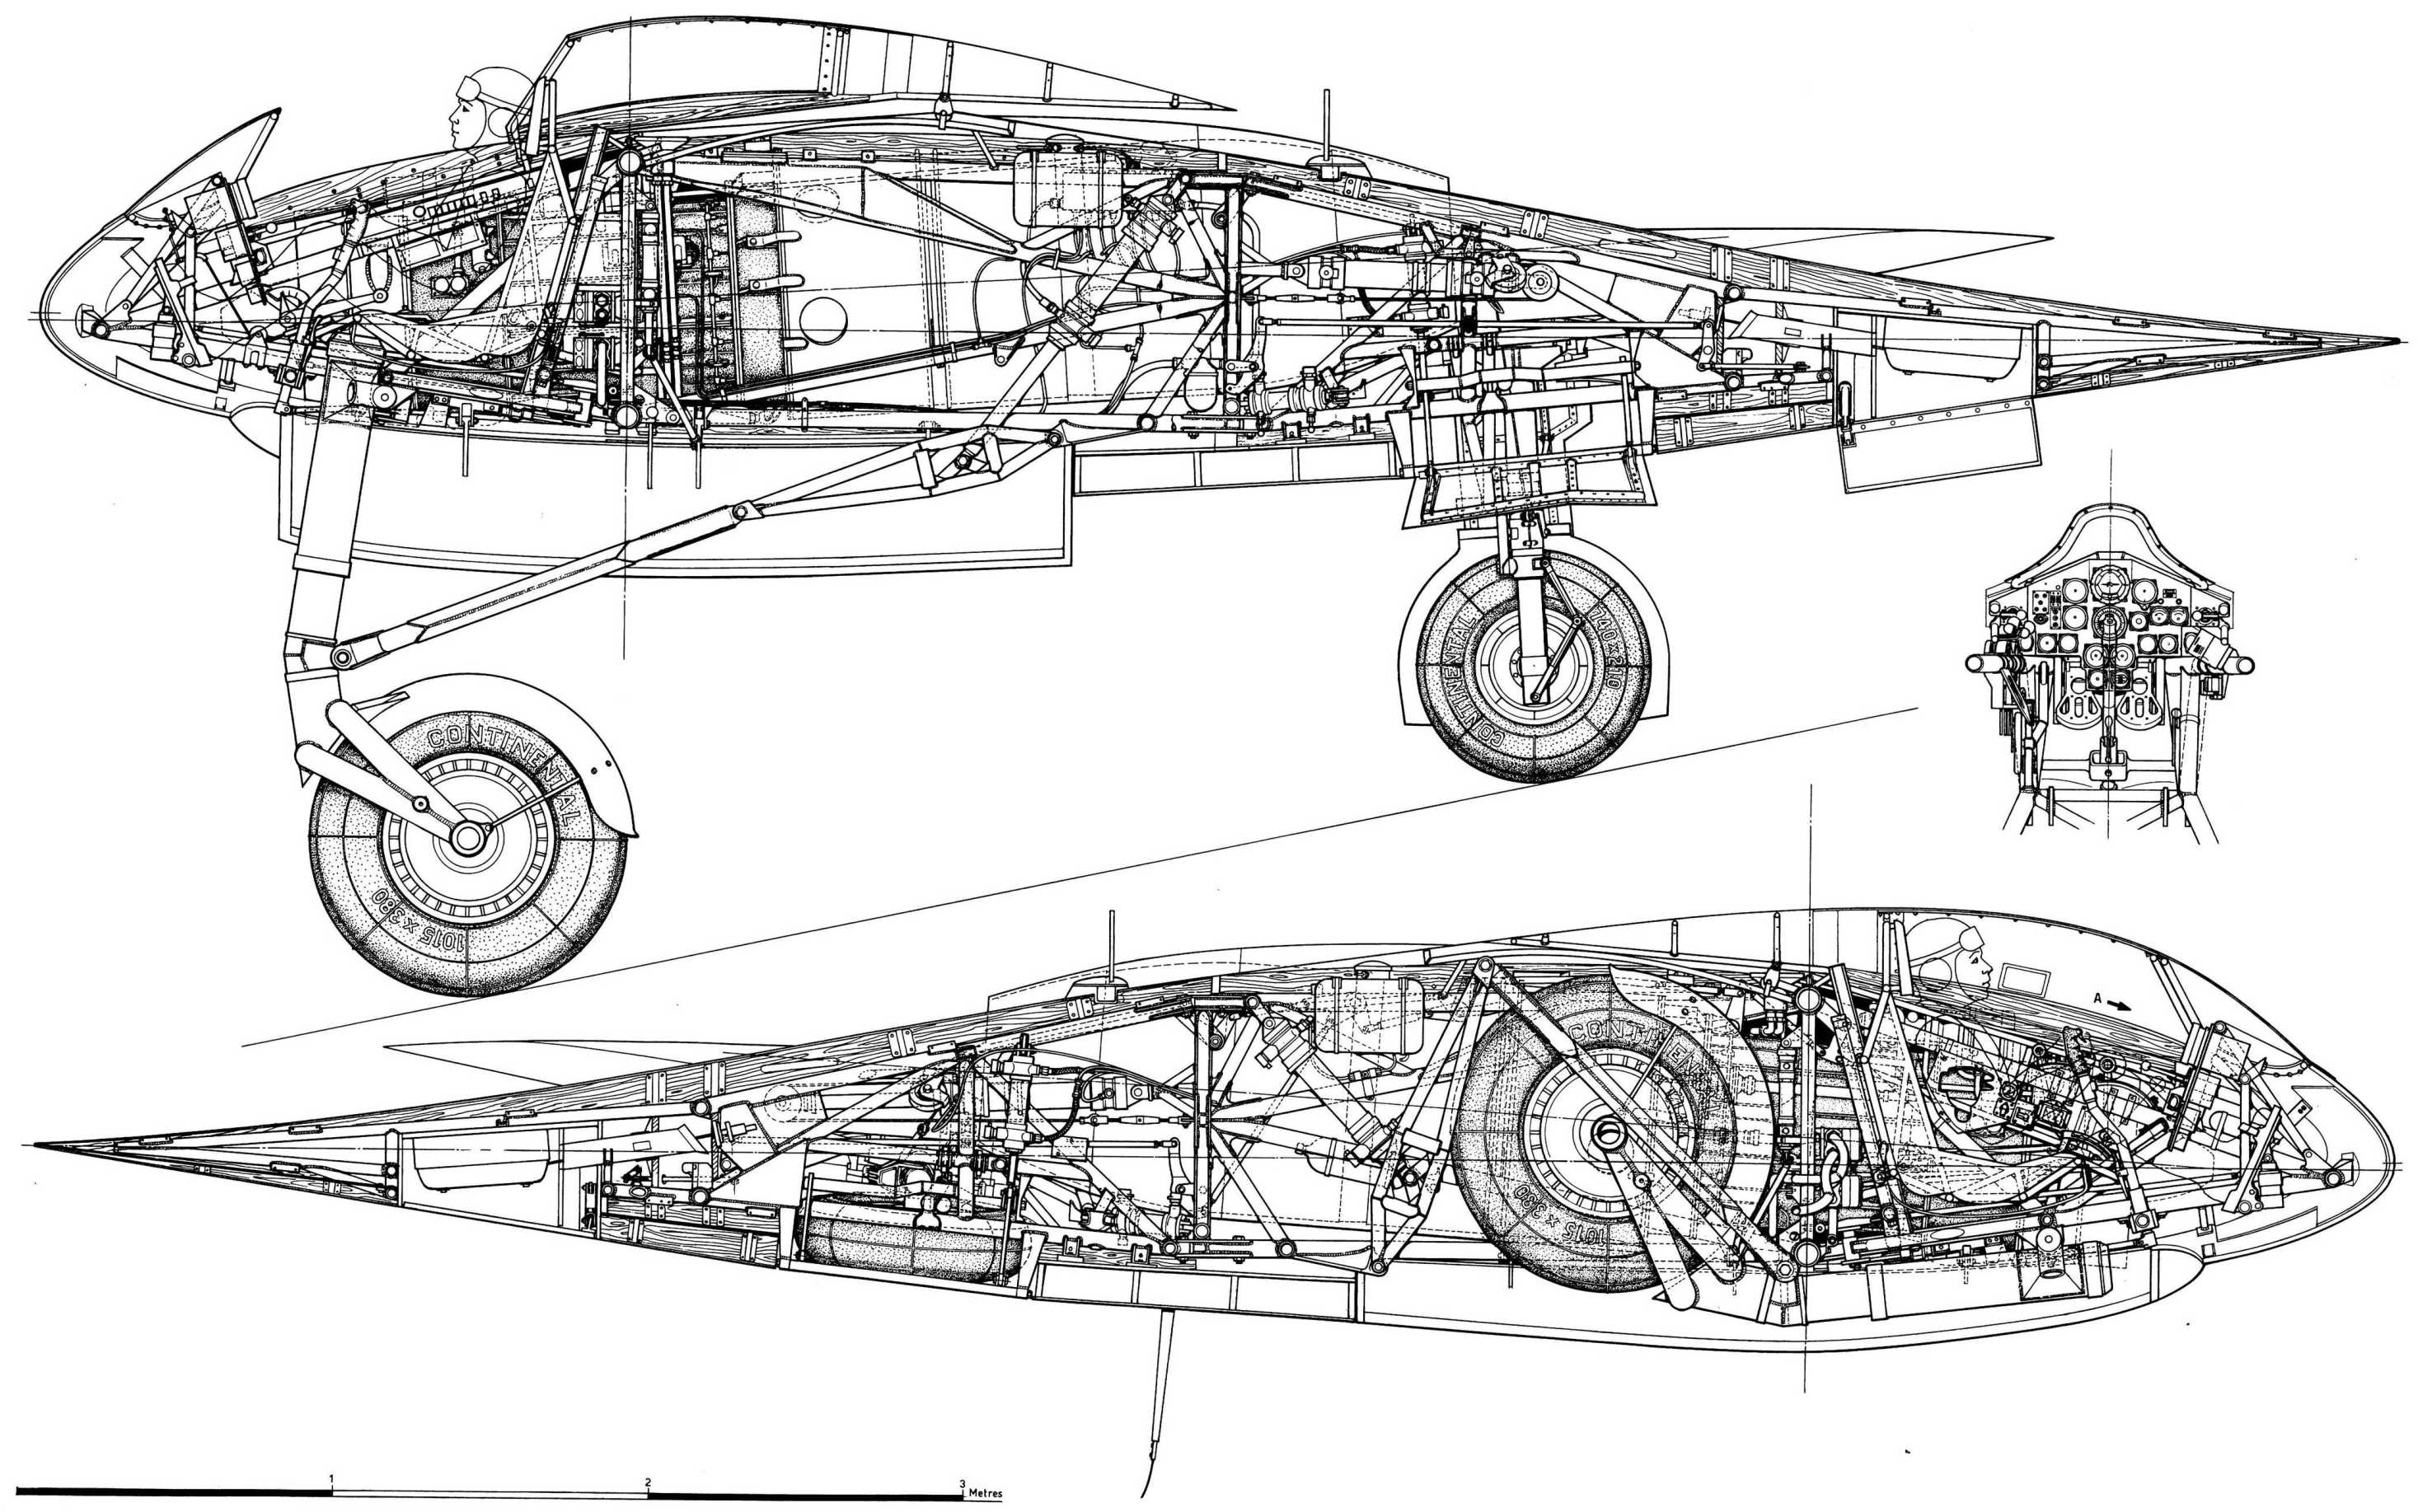 Horten ho-229A Blueprint - Download free blueprint for 3D modeling